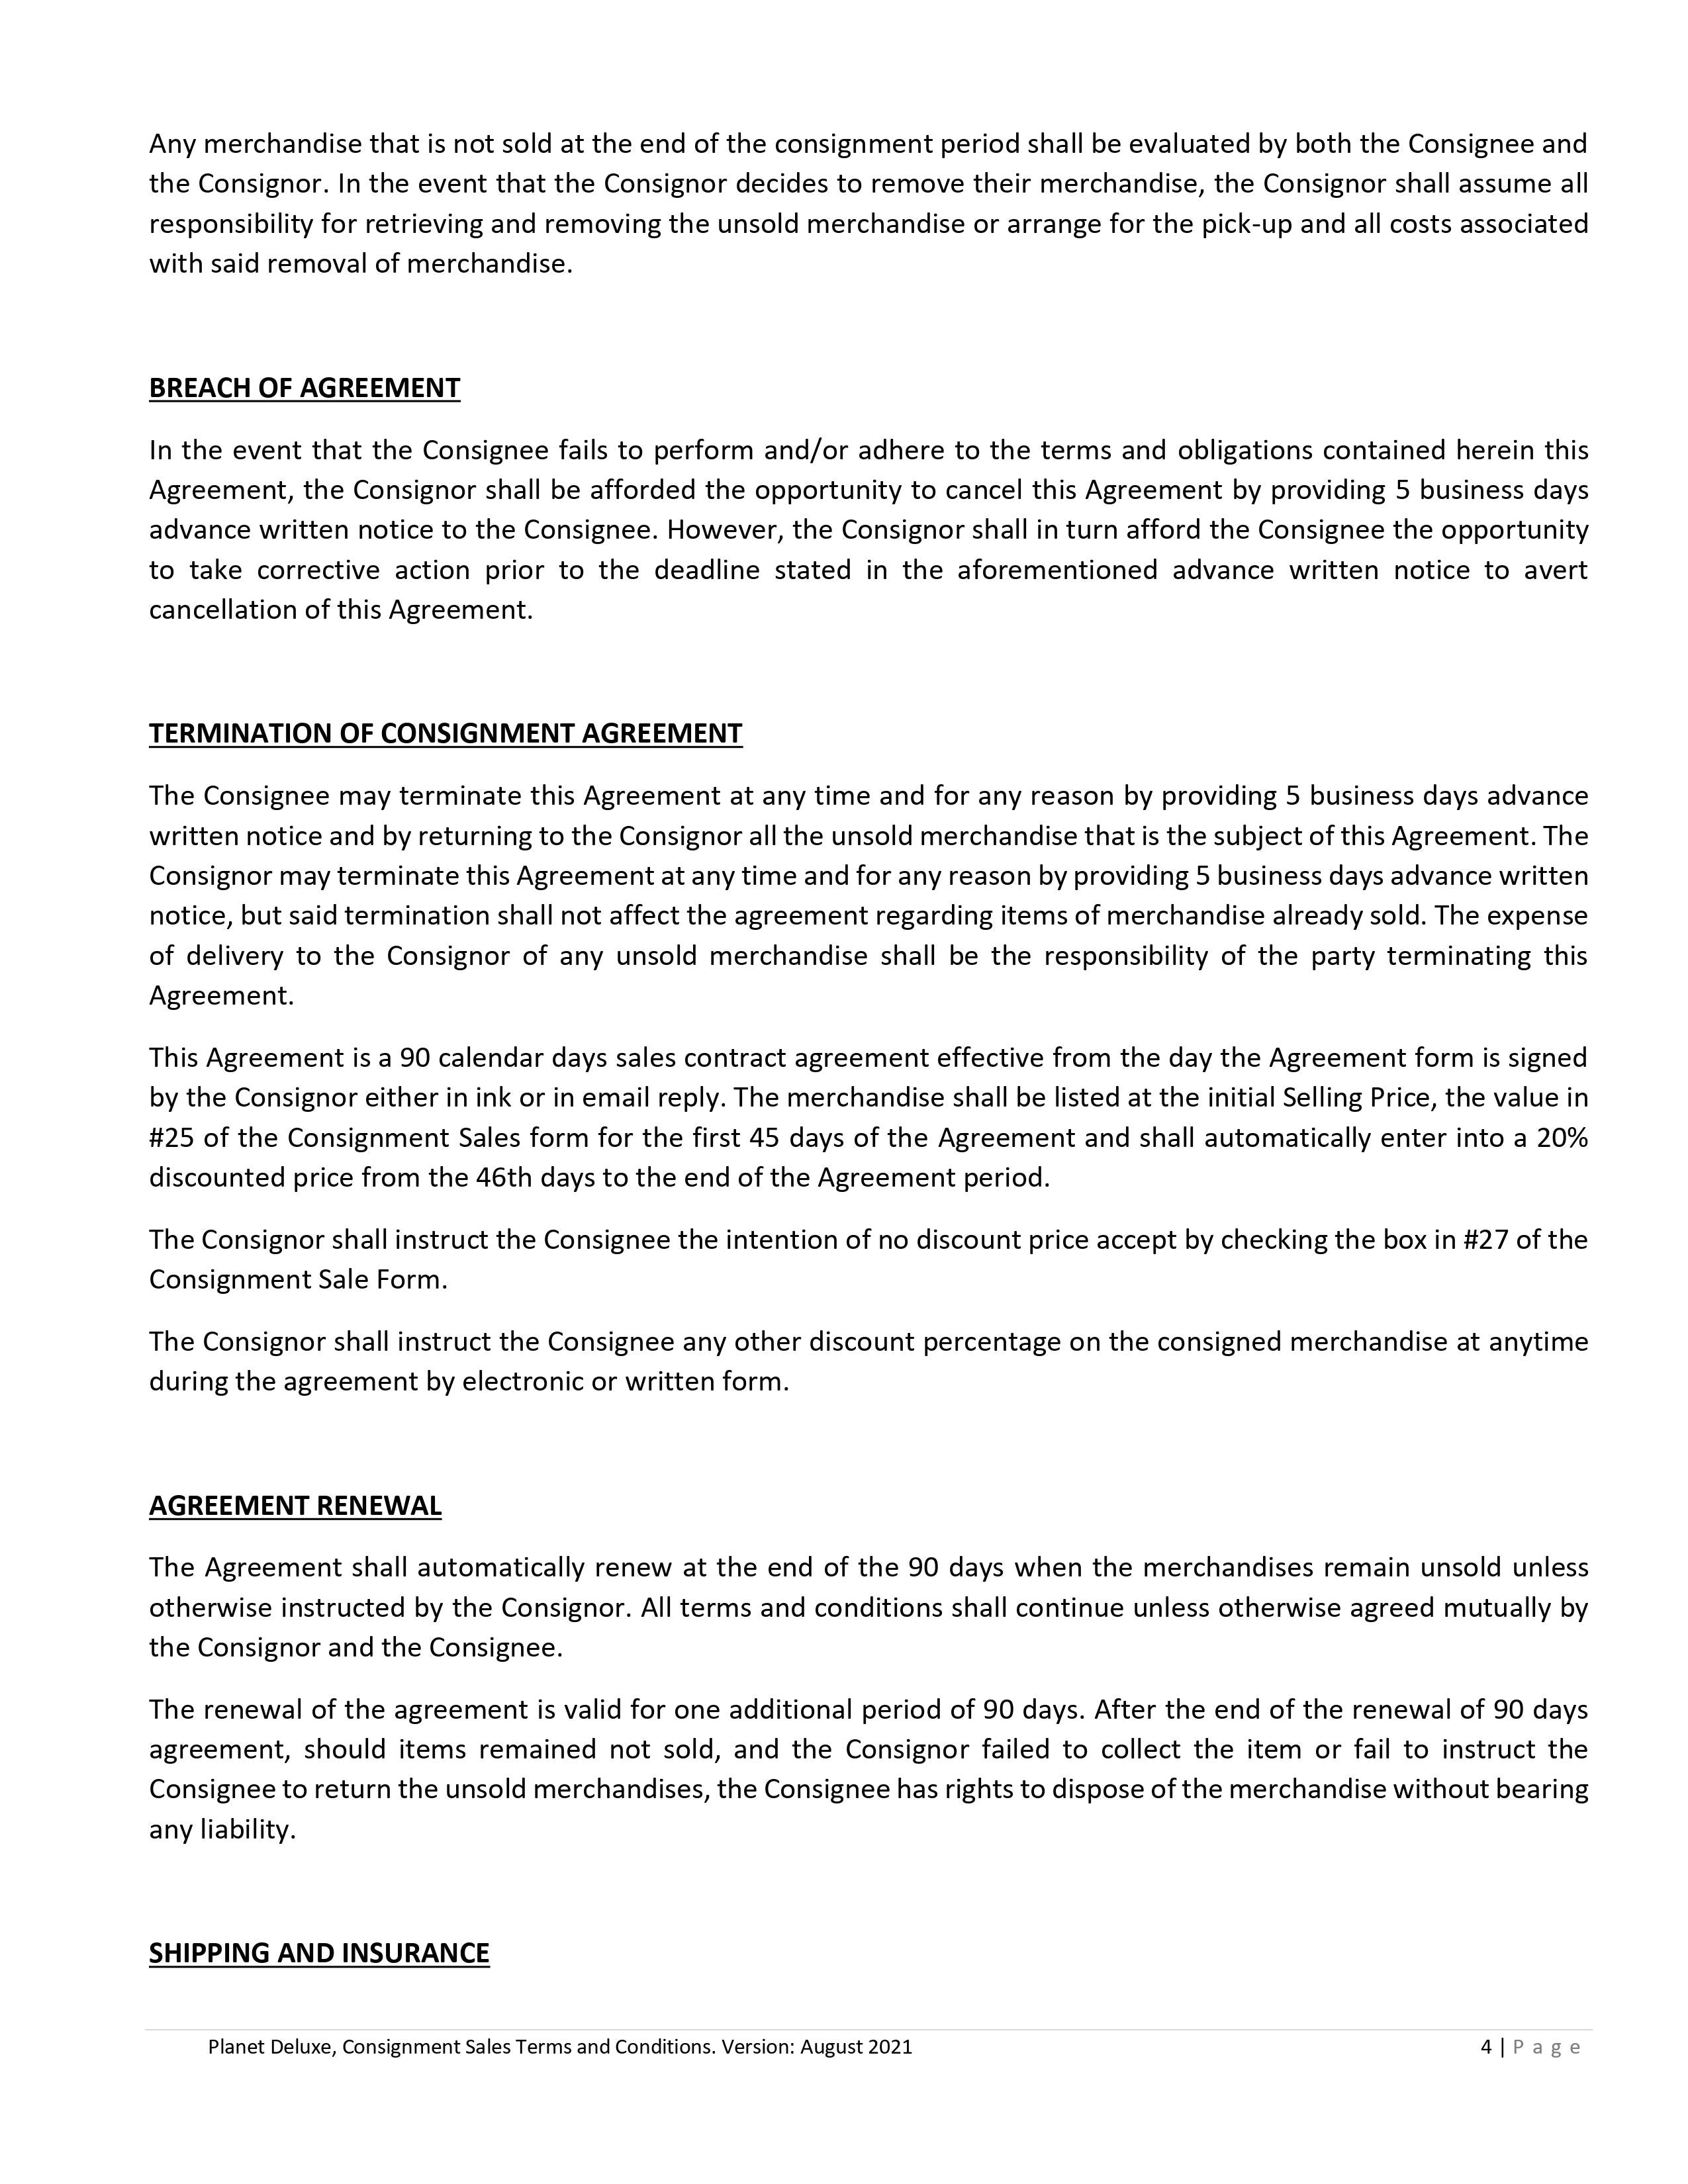 Consignment contract page 3